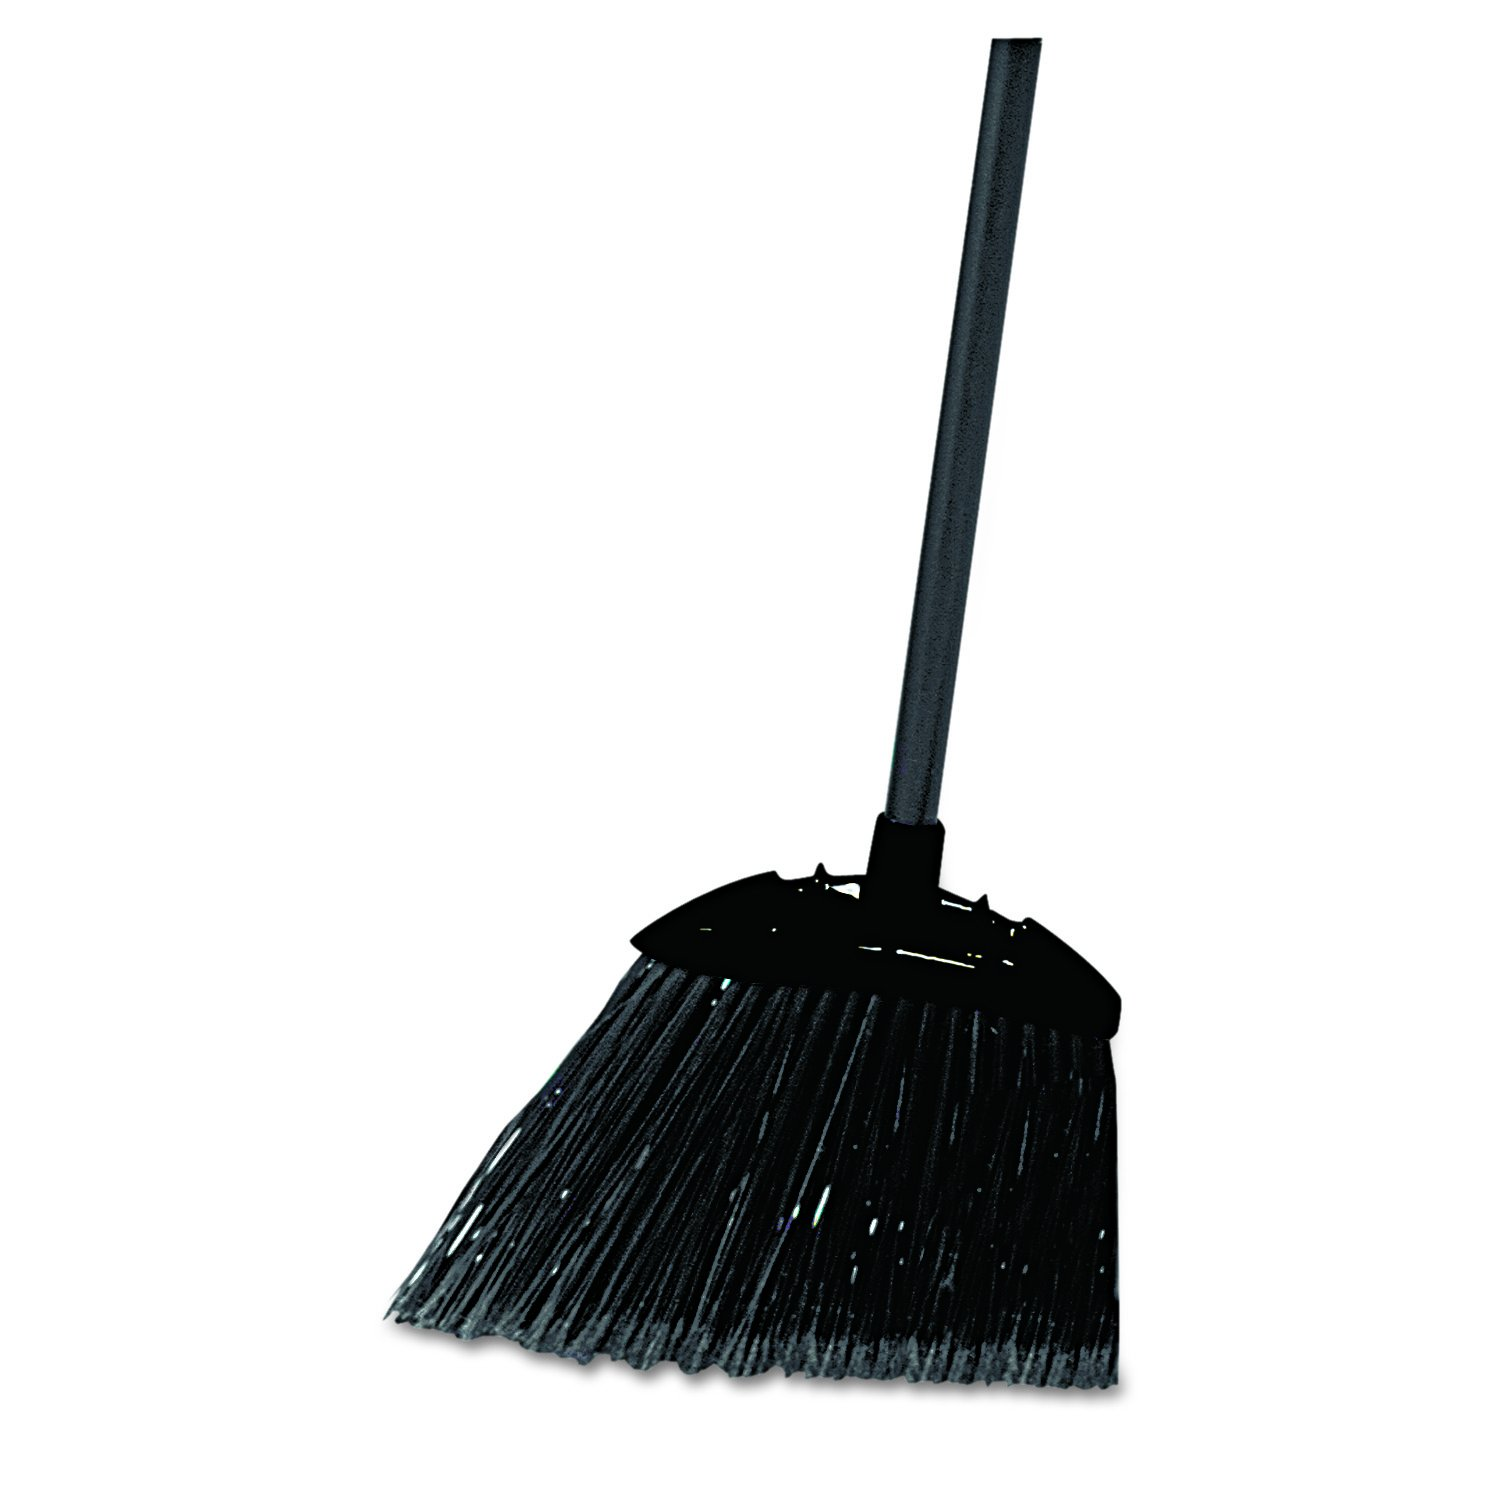 Rubbermaid Commercial Lobby Pro Broom, Polyethylene Bristles, 28-Inch Metal Handle, Black/Yellow (FG637400BLA) Rubbermaid Commercial Products